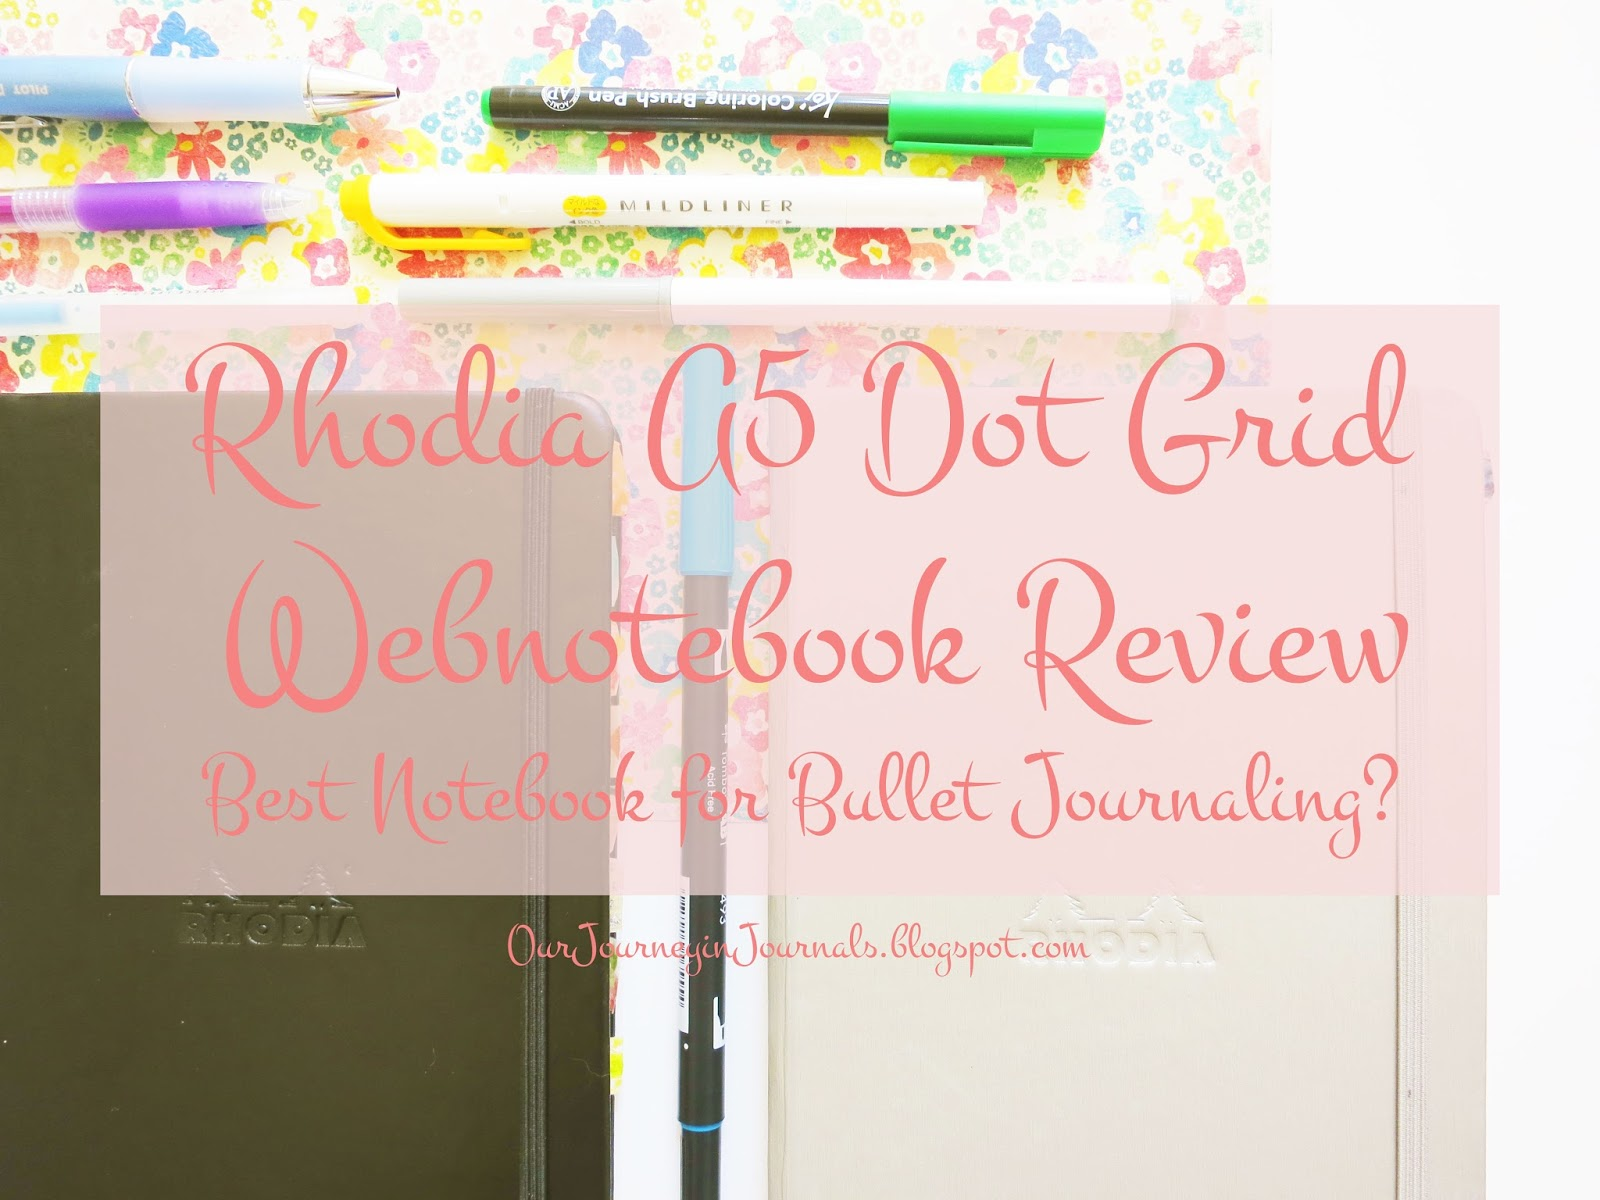 Our Journey In Journals Rhodia A5 Dot Grid Webnotebook Review Best